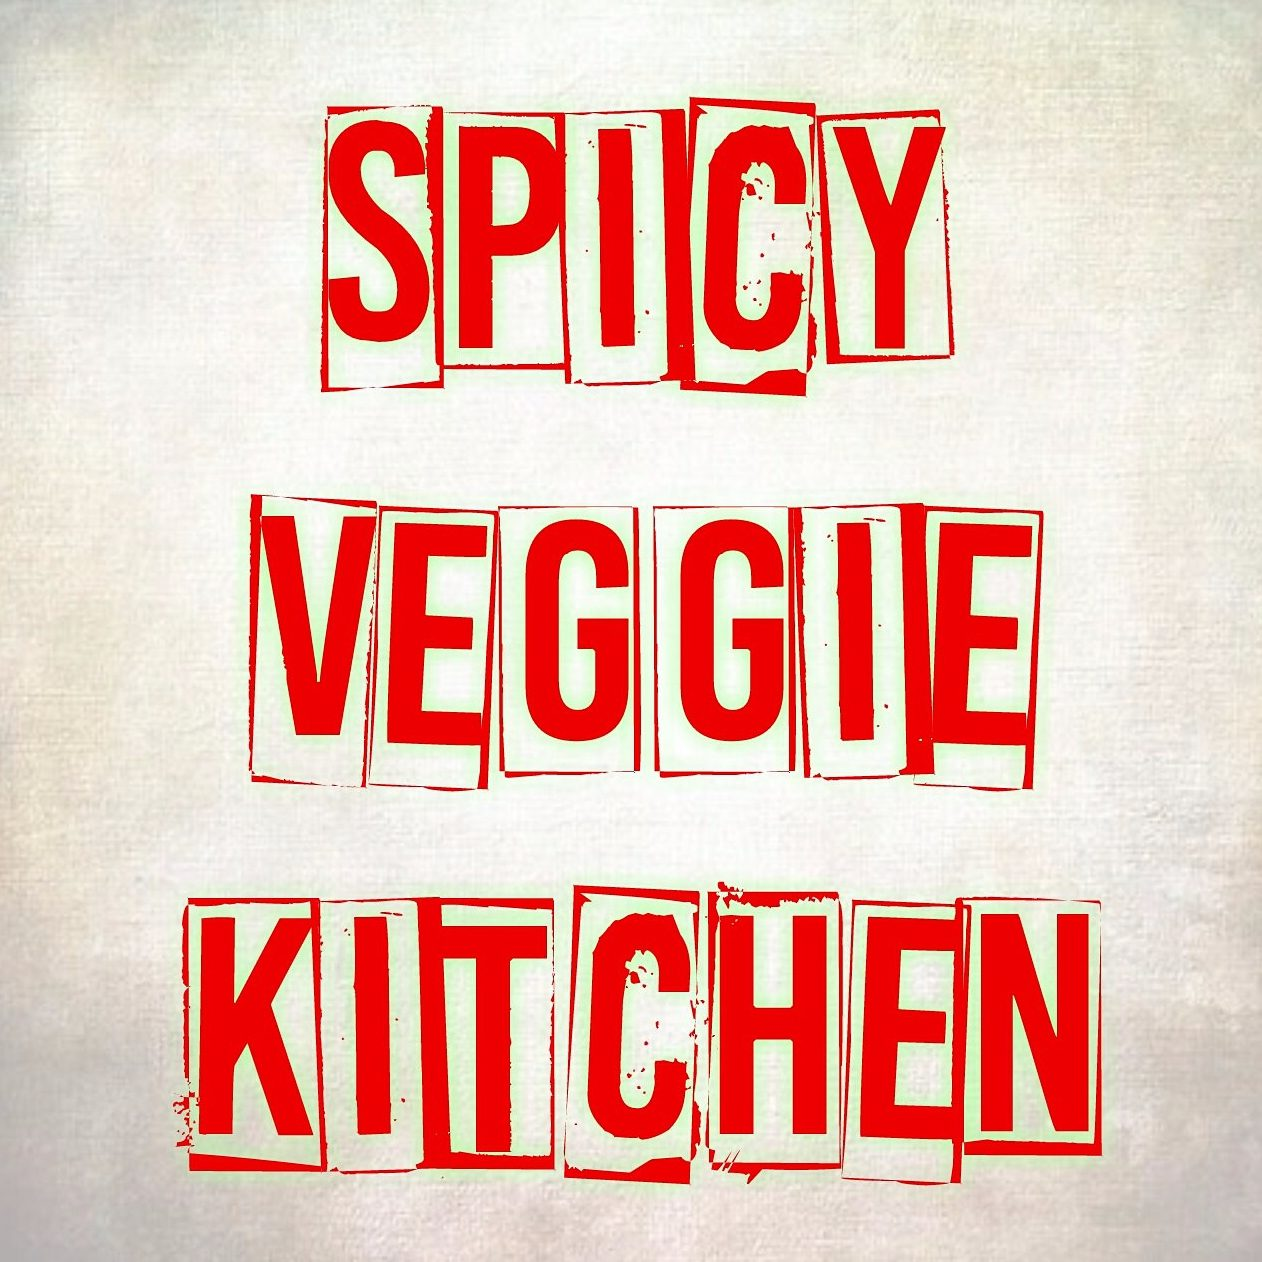 Spicy Veggie Kitchen